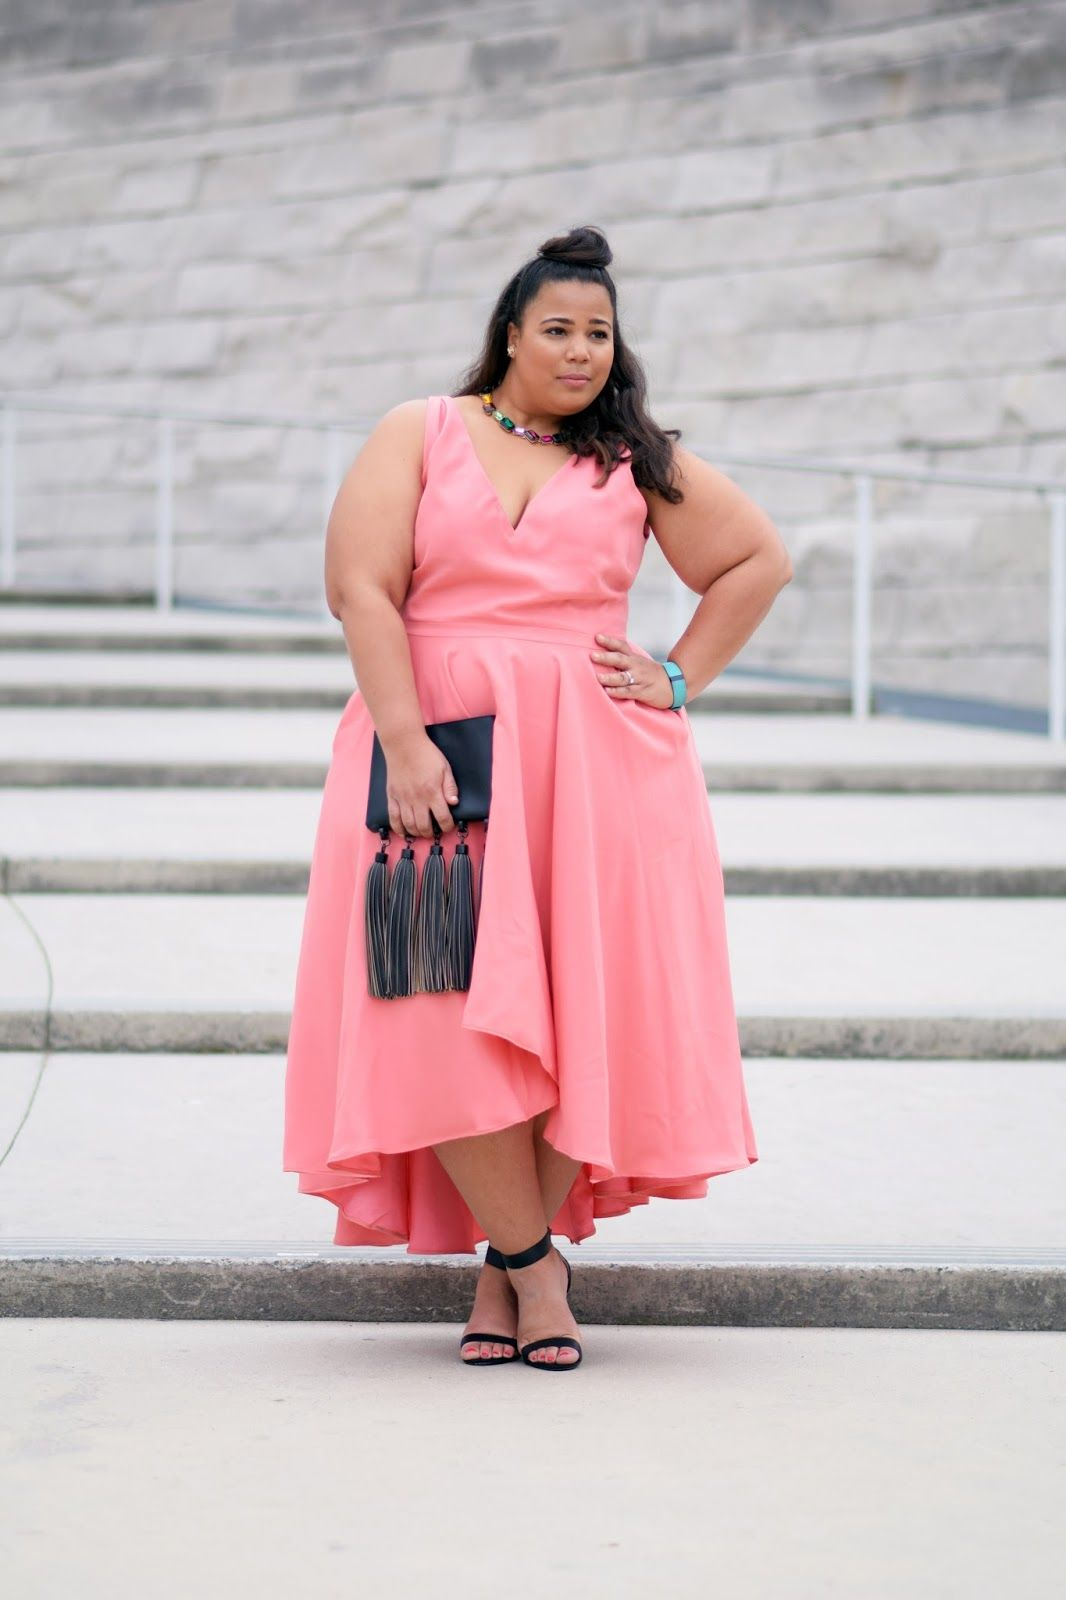 GarnerStyle | The Curvy Girl Guide: How I Got My $910 look for $139 ...